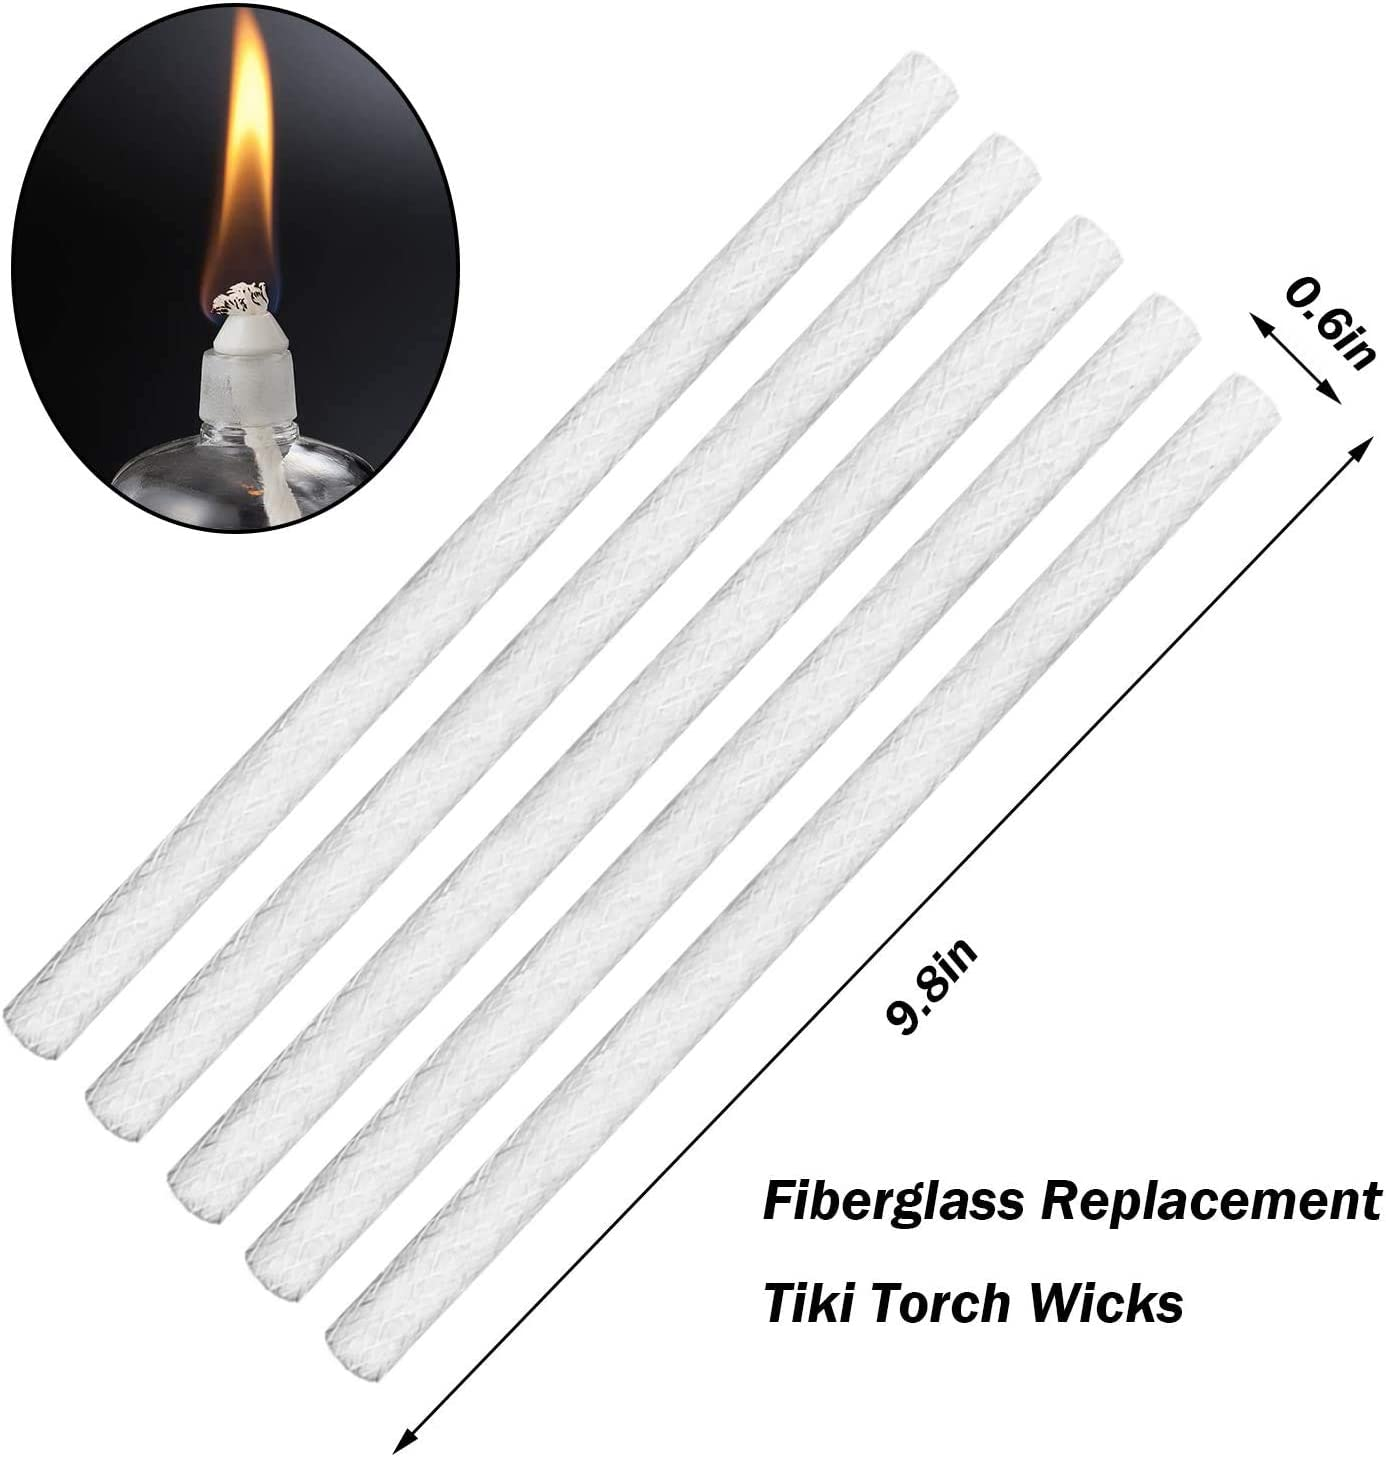 ZYP Fiberglass Replacement Wicks-9.85 Inch Long Life Torch Replacement Wick Oil Lamps Wicks for Indoor Outdoor Lighting Decor 15PCS